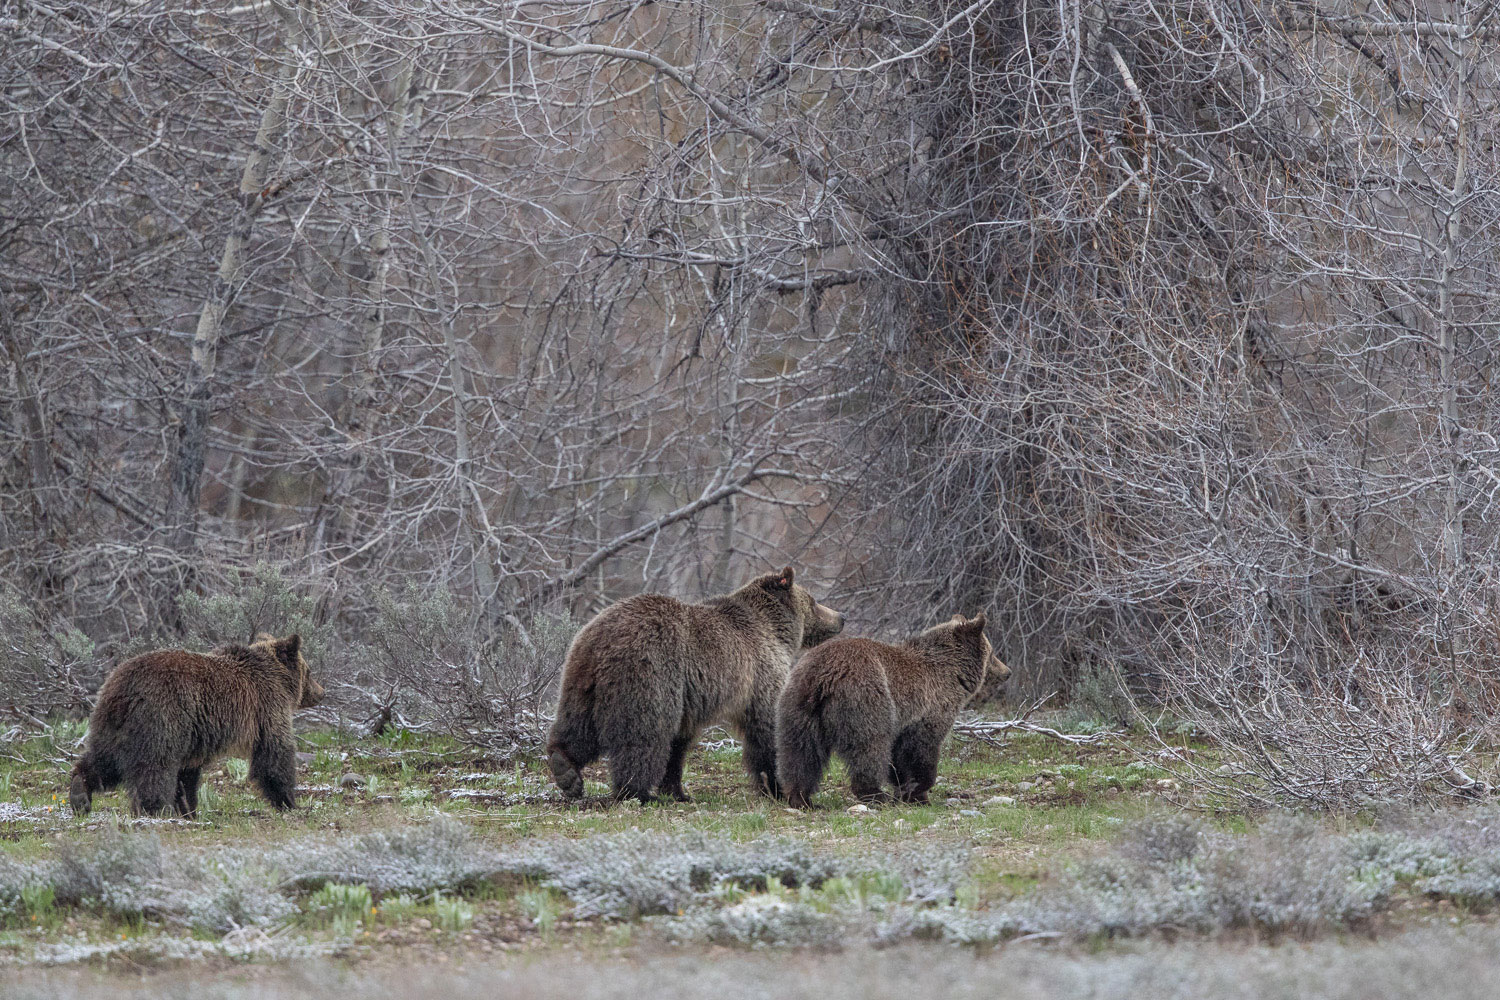 Blondie and her two subadult cubs head to the thicket in the gently falling snow.  These cubs have been with her for two years...